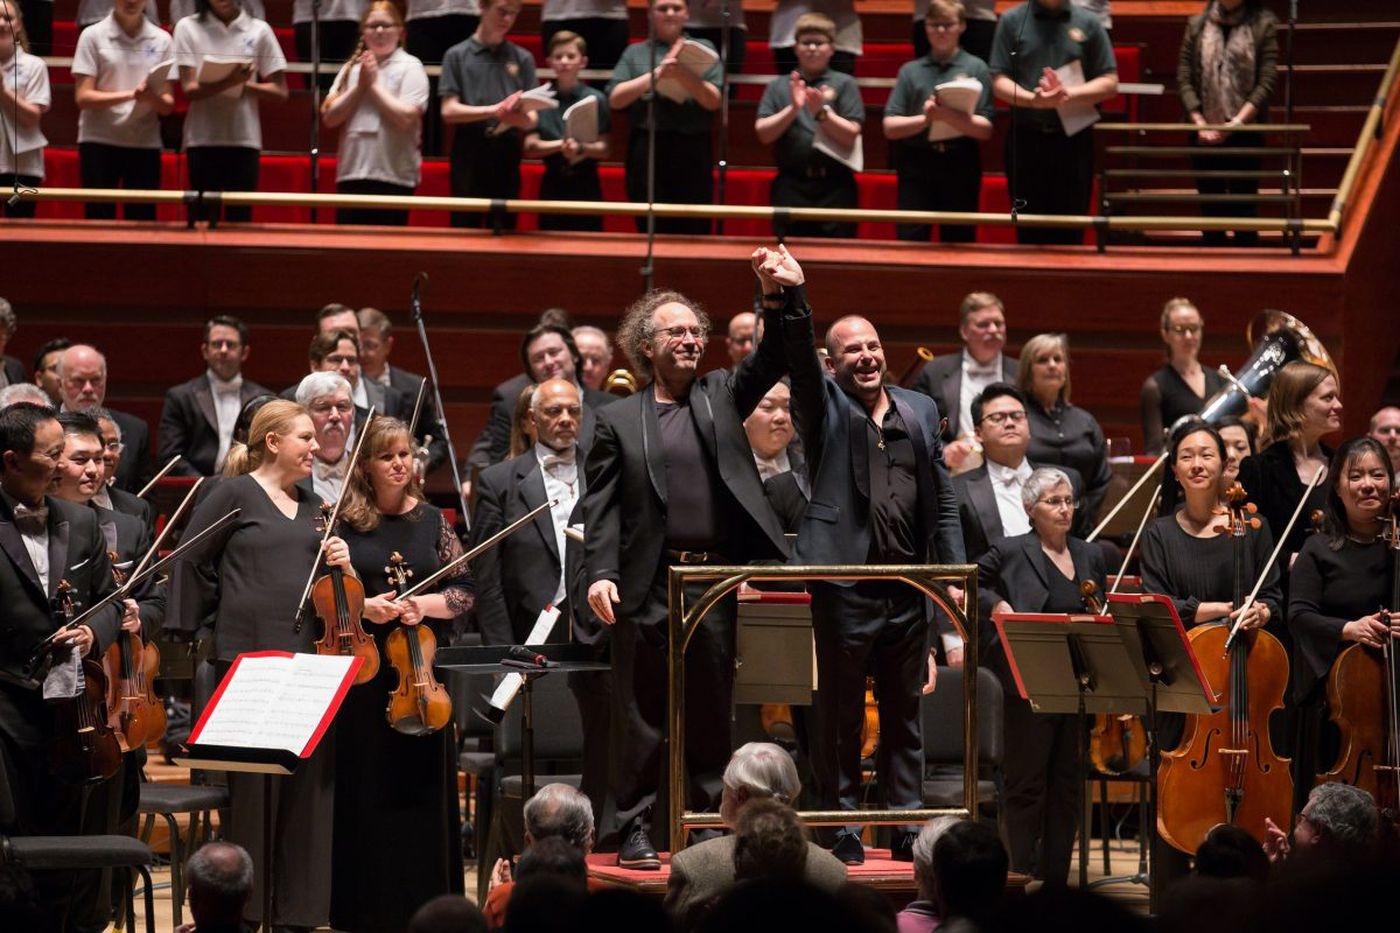 Philadelphia Orchestra's new oratorio wit' cheesesteaks was great fun at its Philly premiere